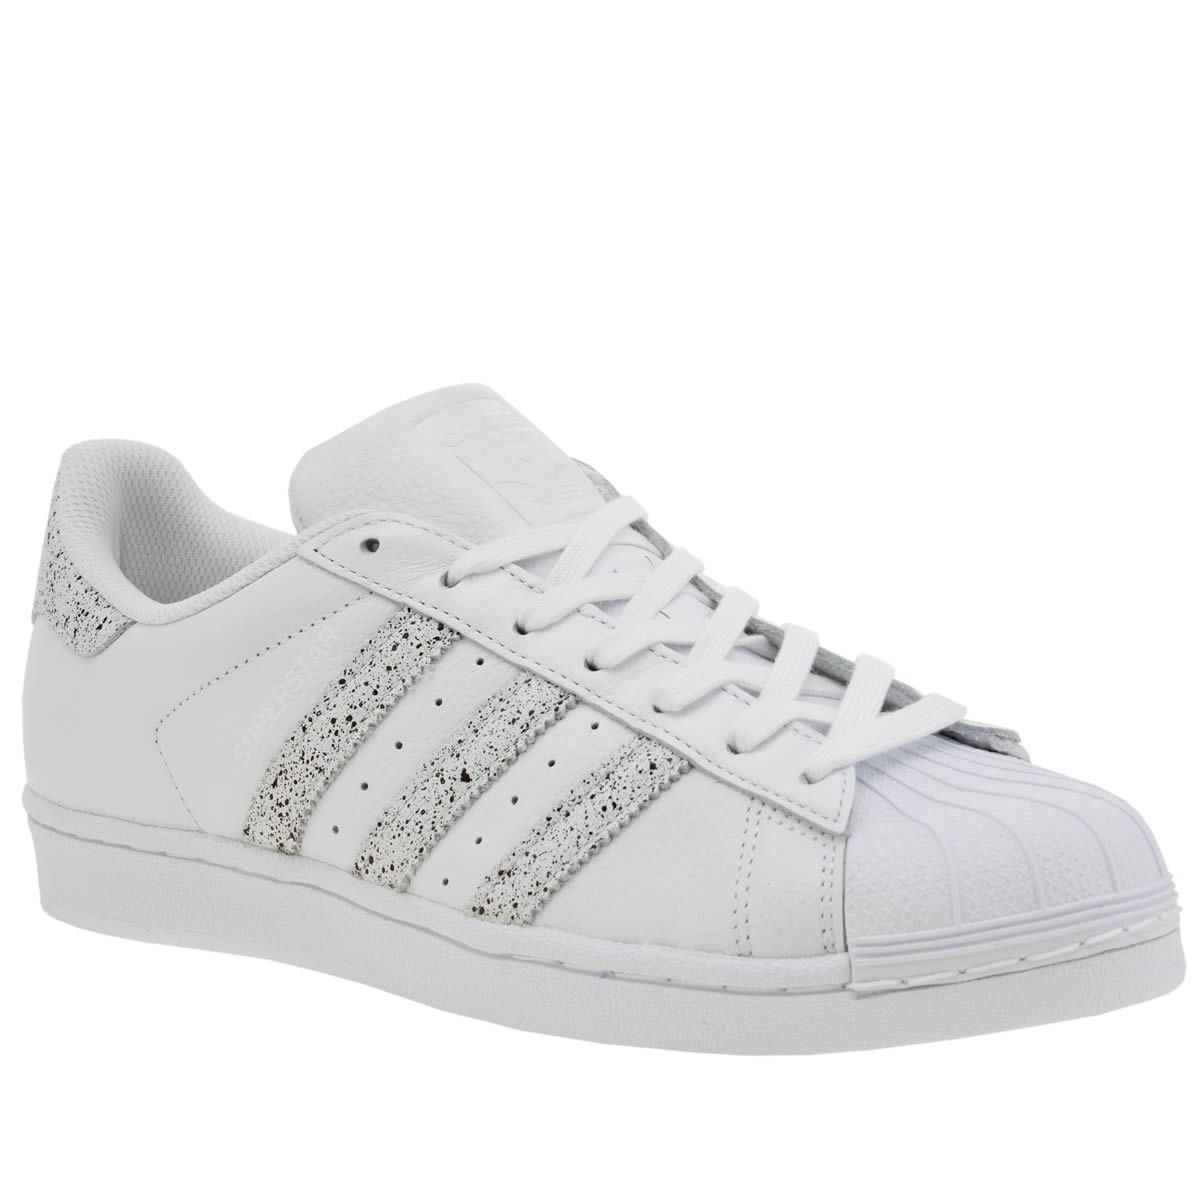 white \u0026 beige superstar country pack, part of the womens adidas trainers  range available at schuh